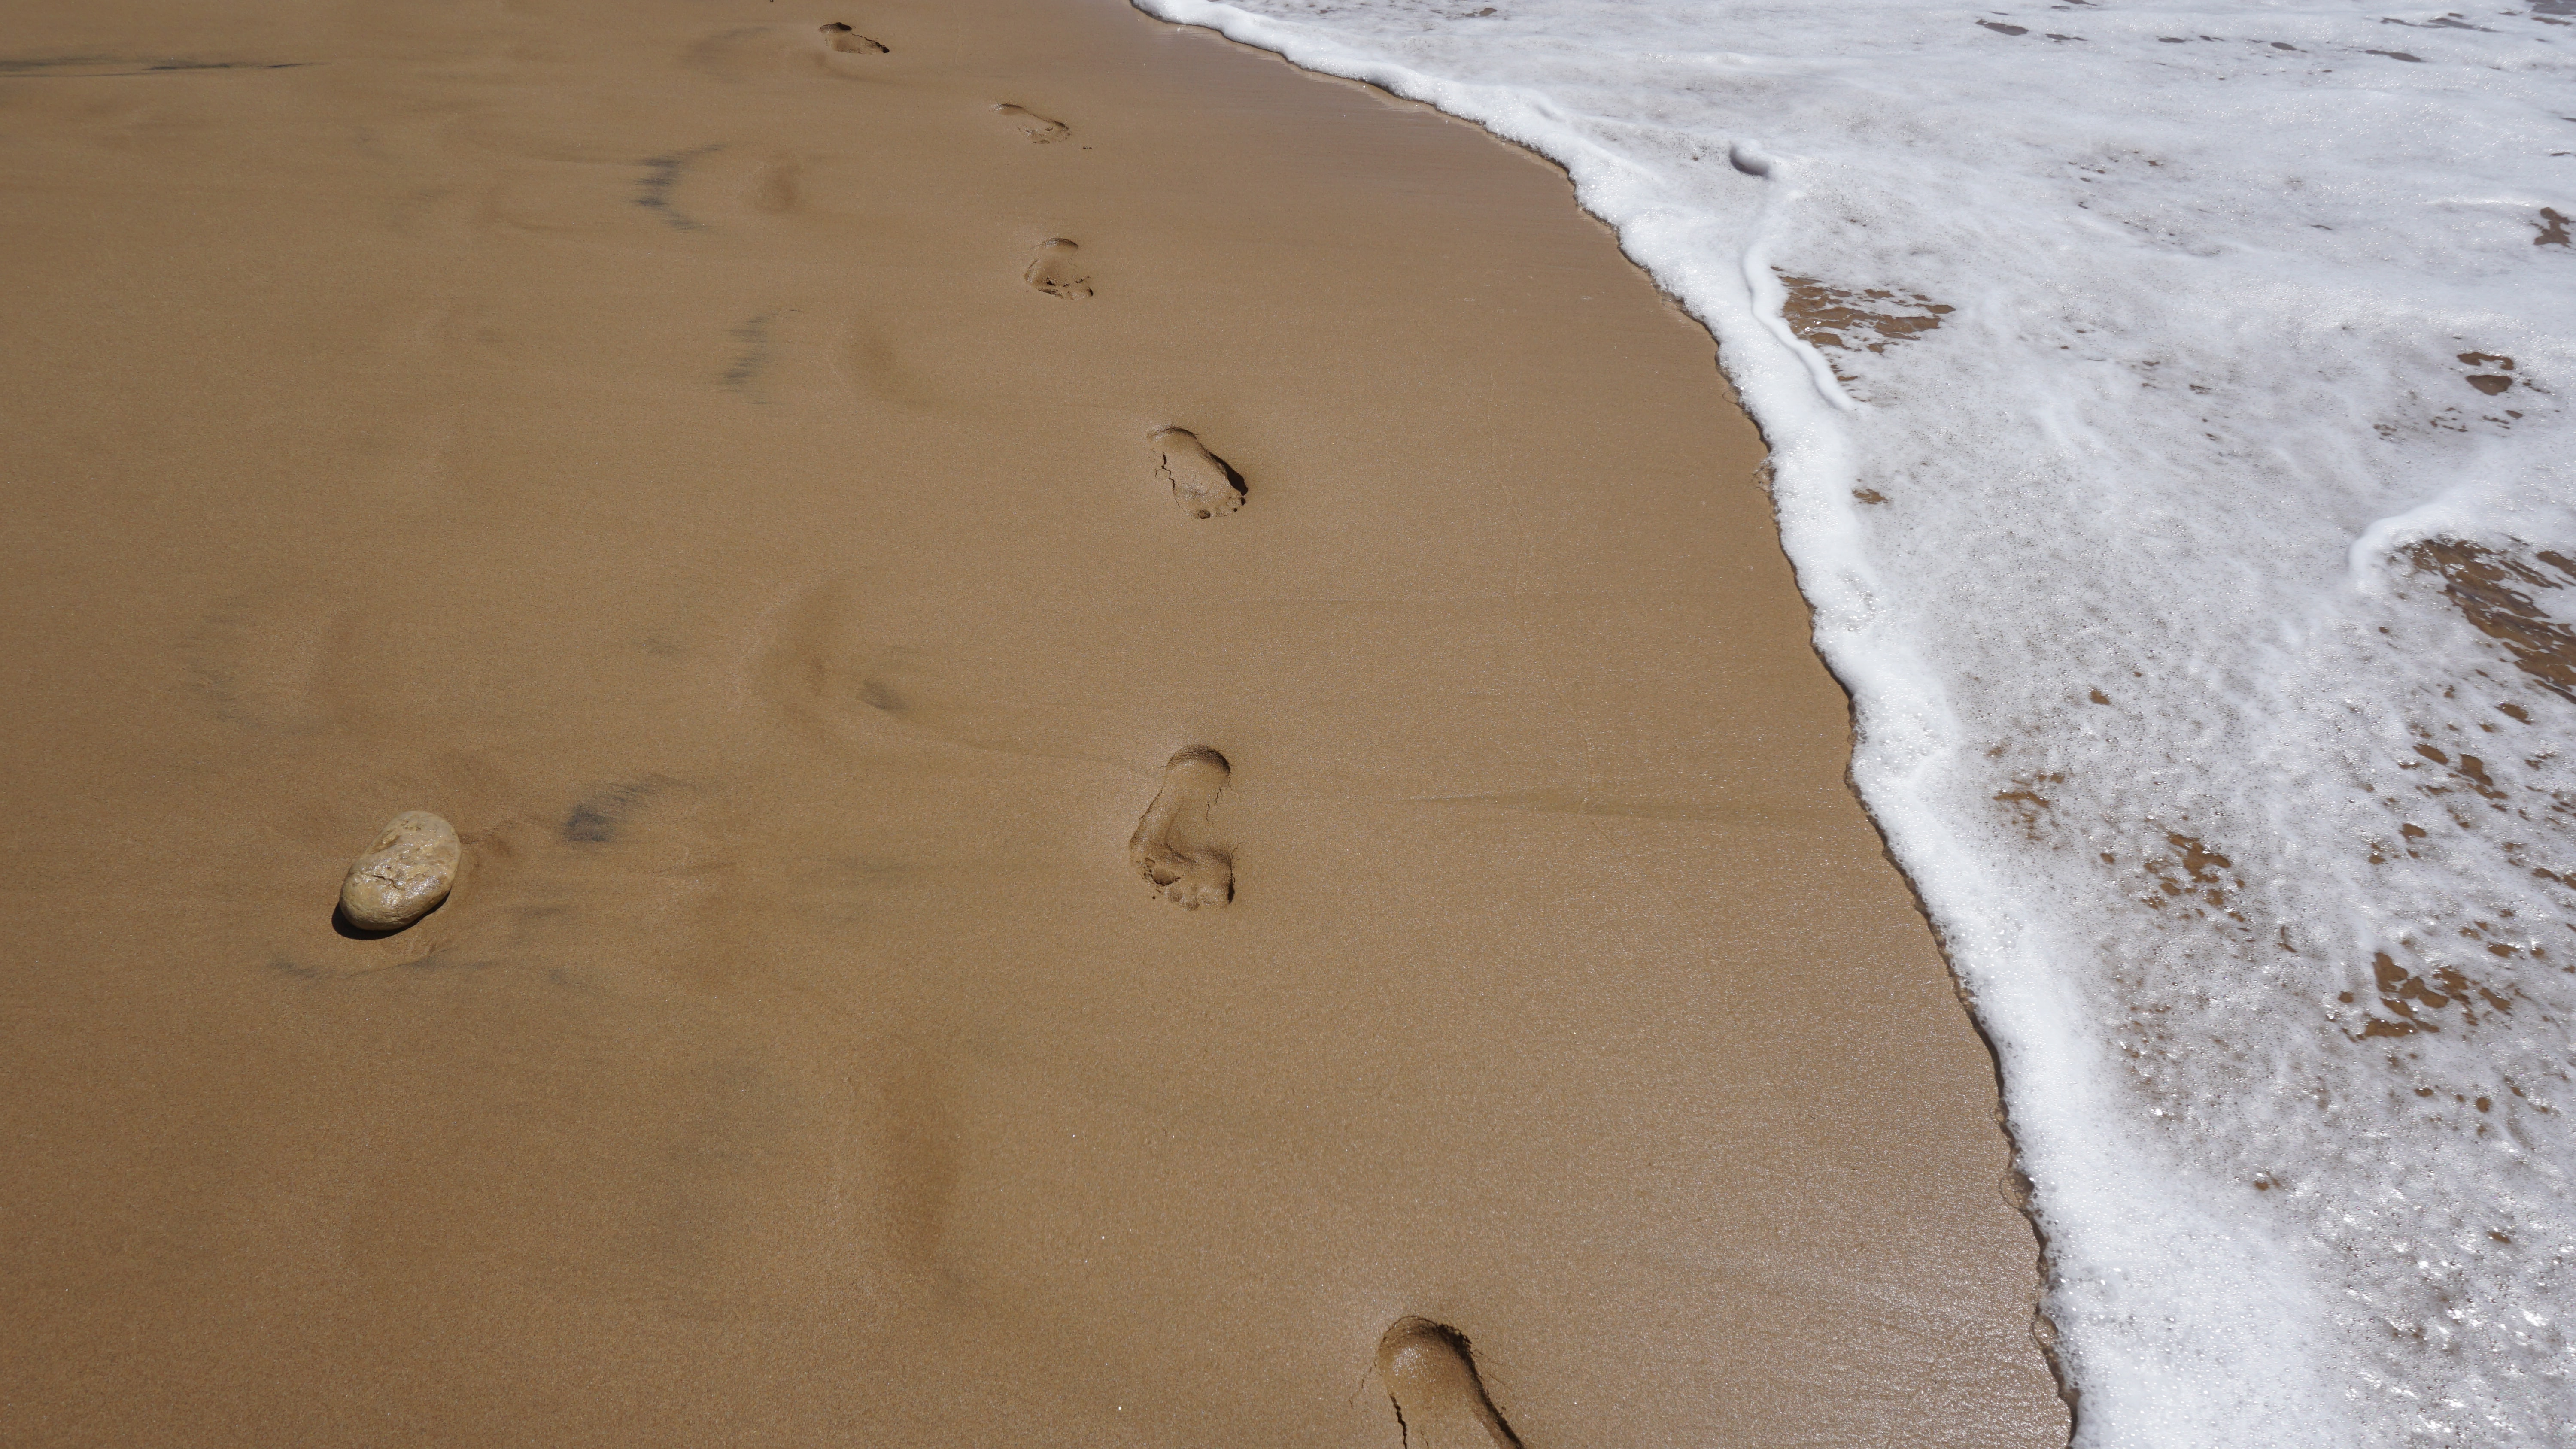 human footprint near on seashore